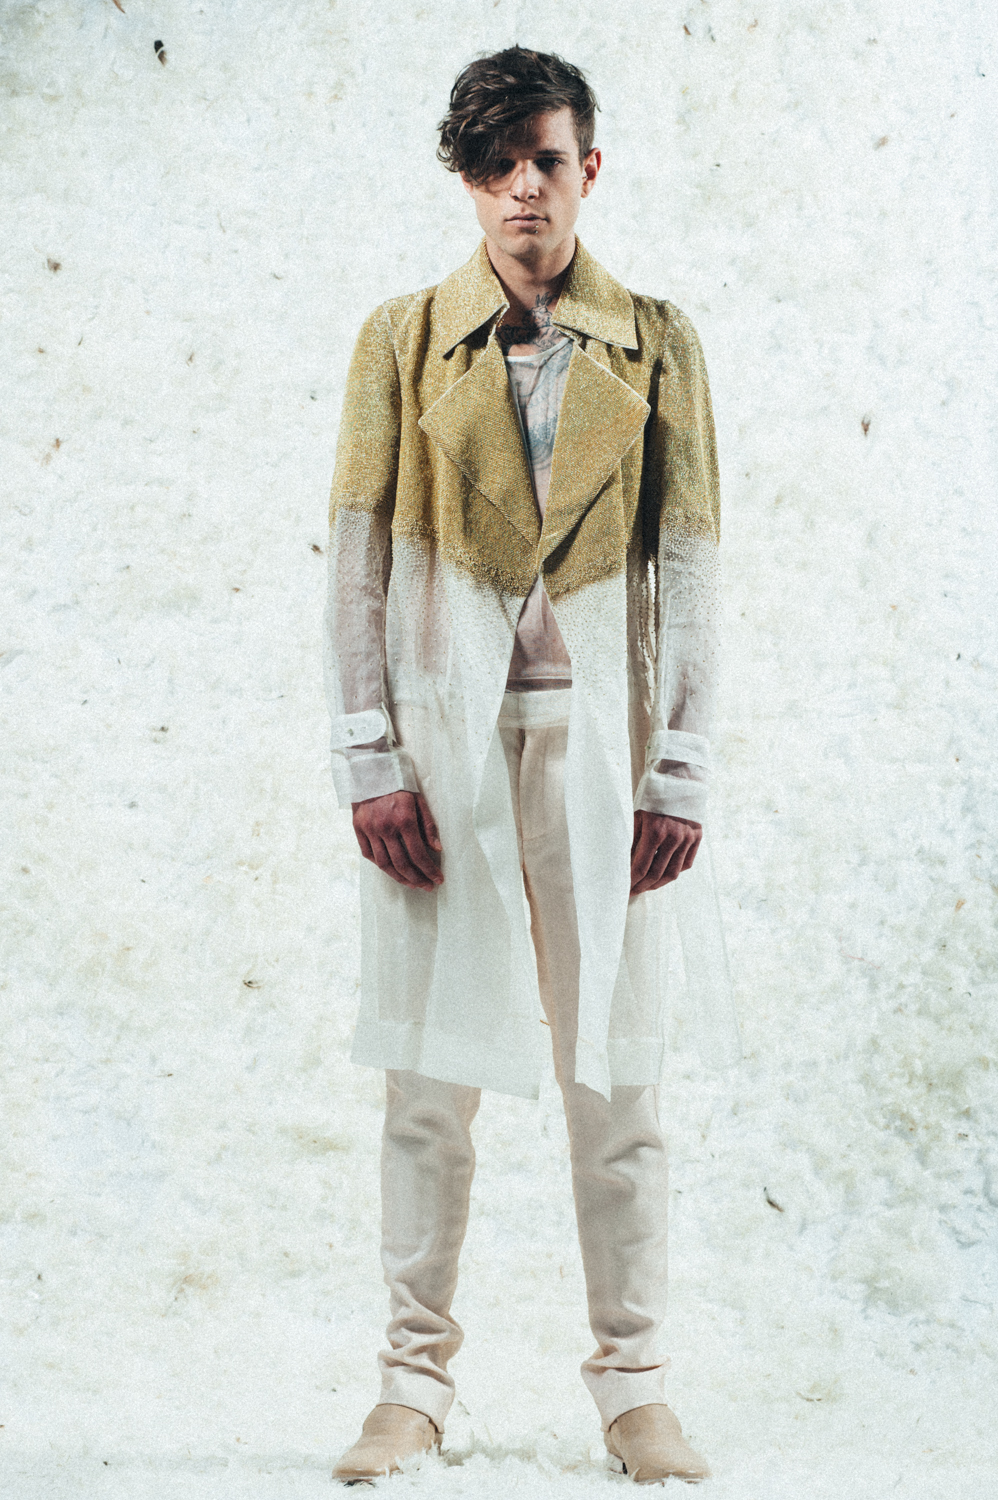 Alexis Housden's BA Collection by Jacqueline Puwalski